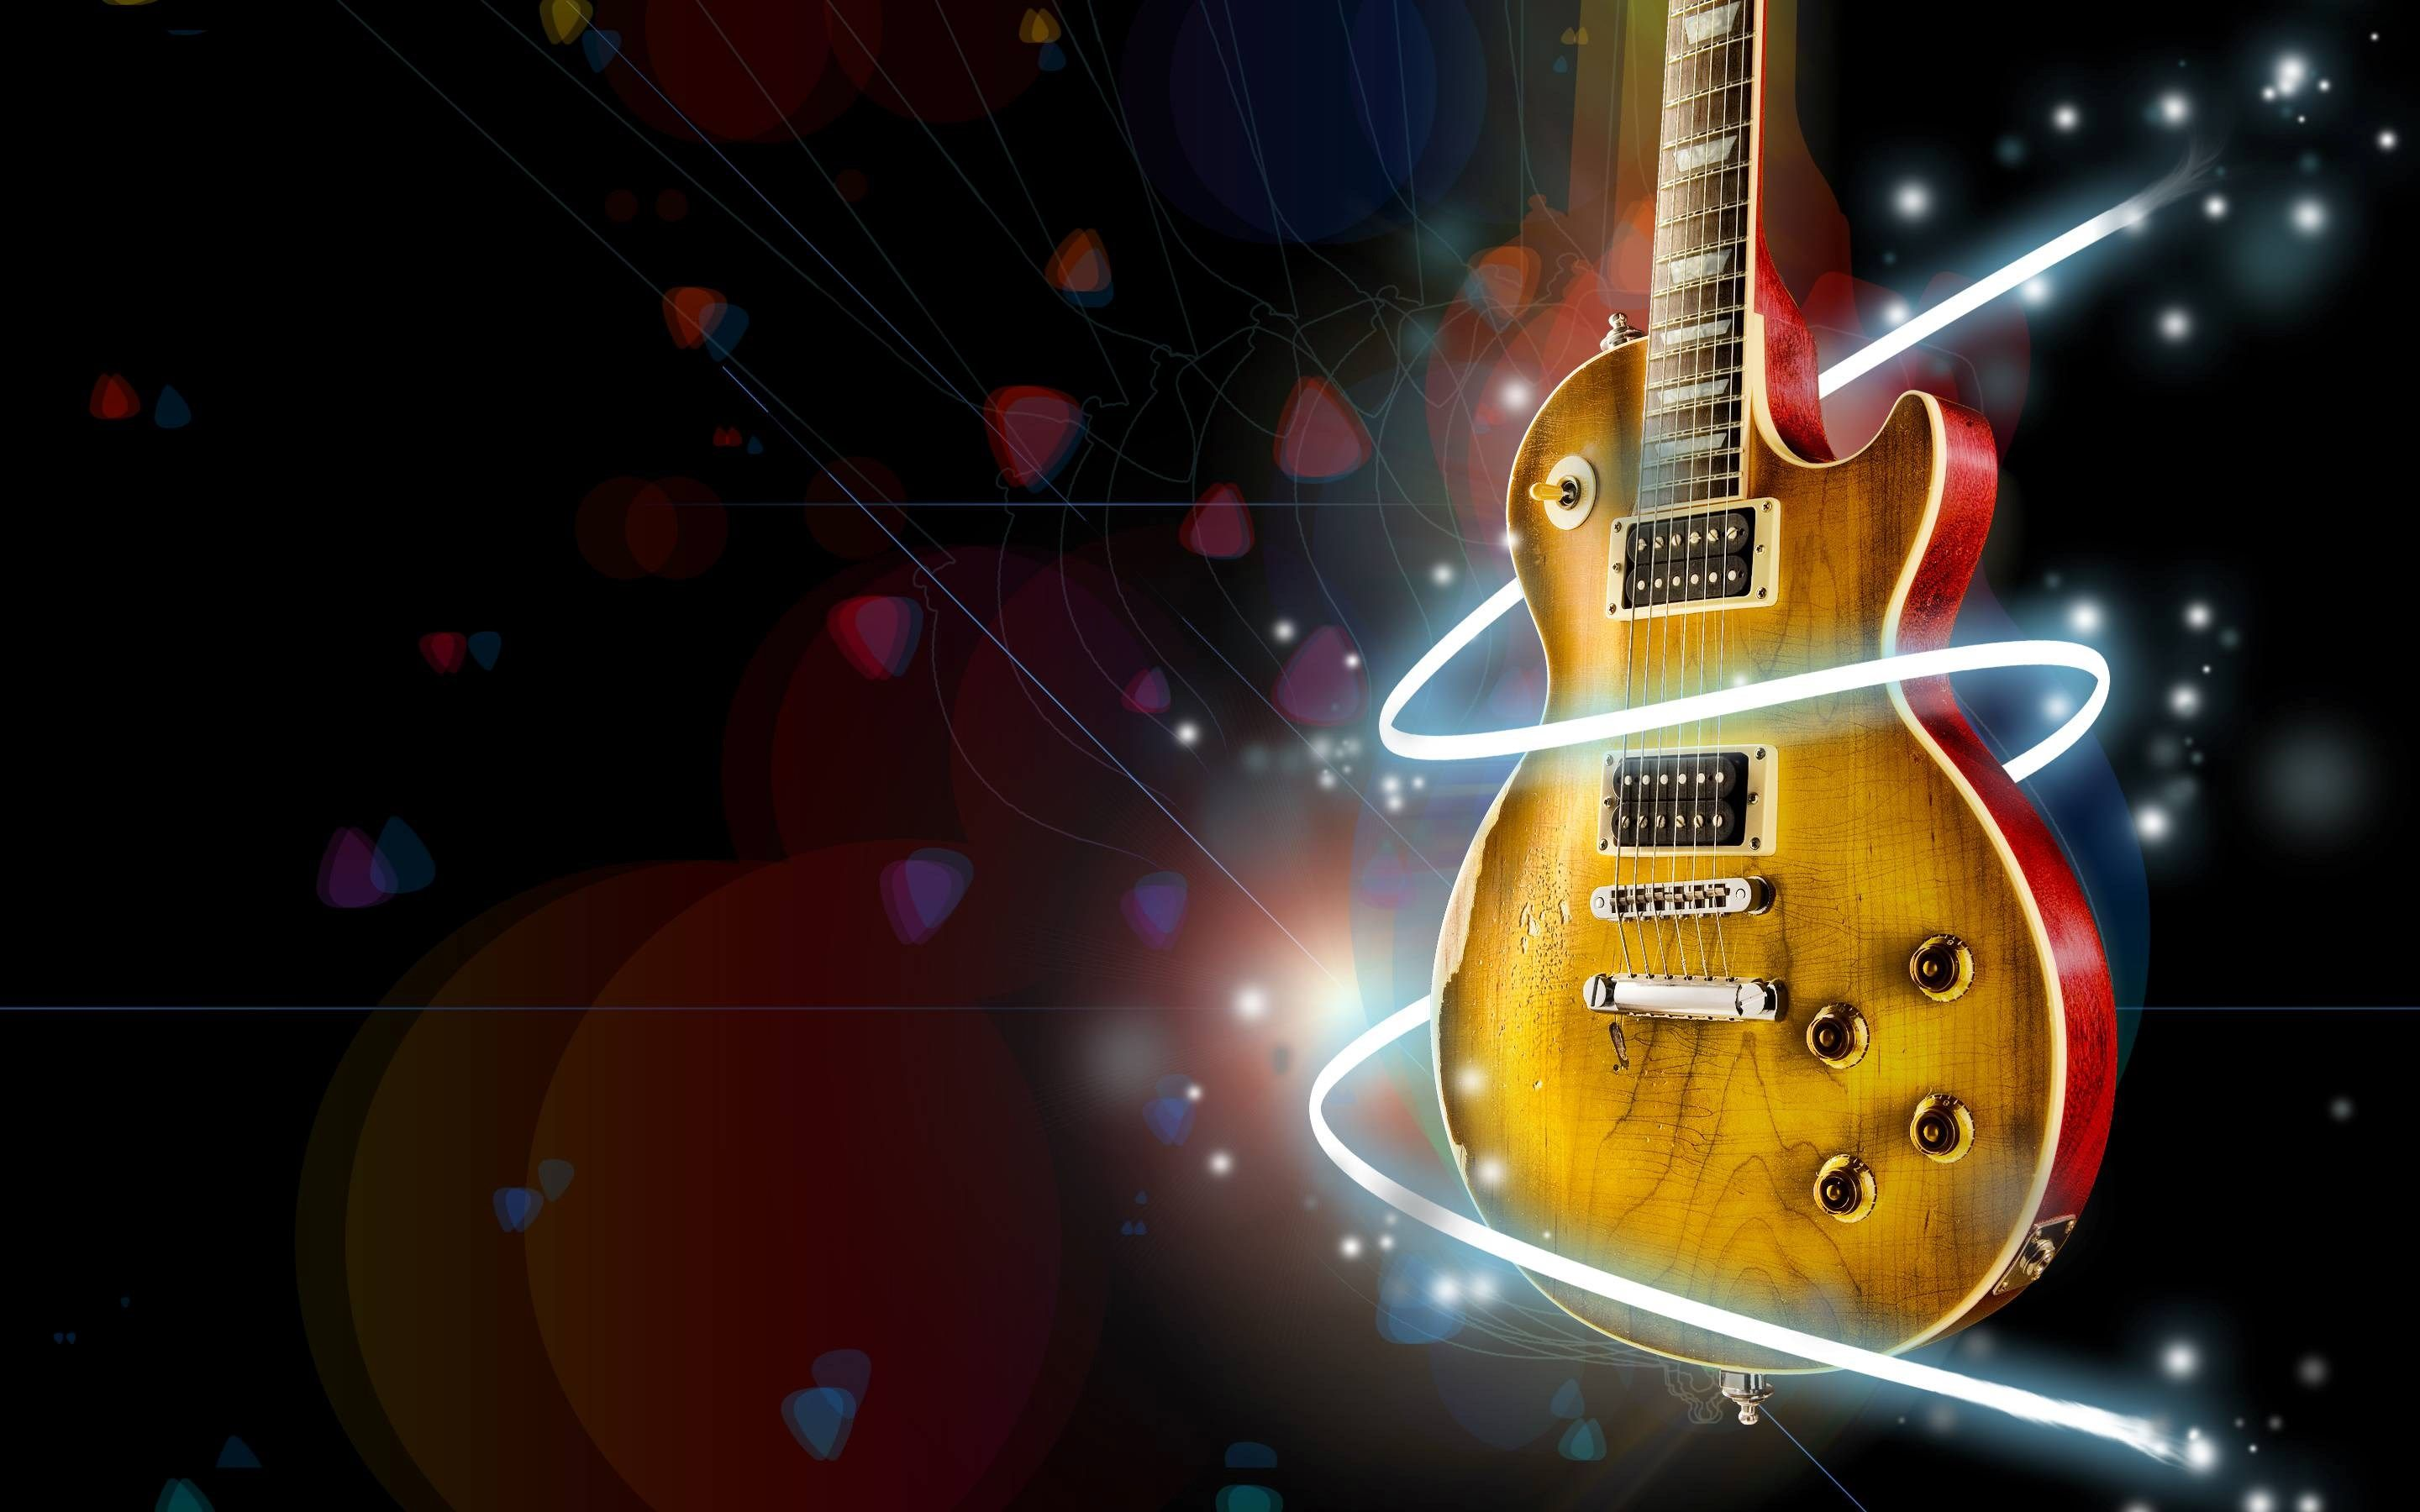 image for electric guitar live wallpaper ideen rund ums haus